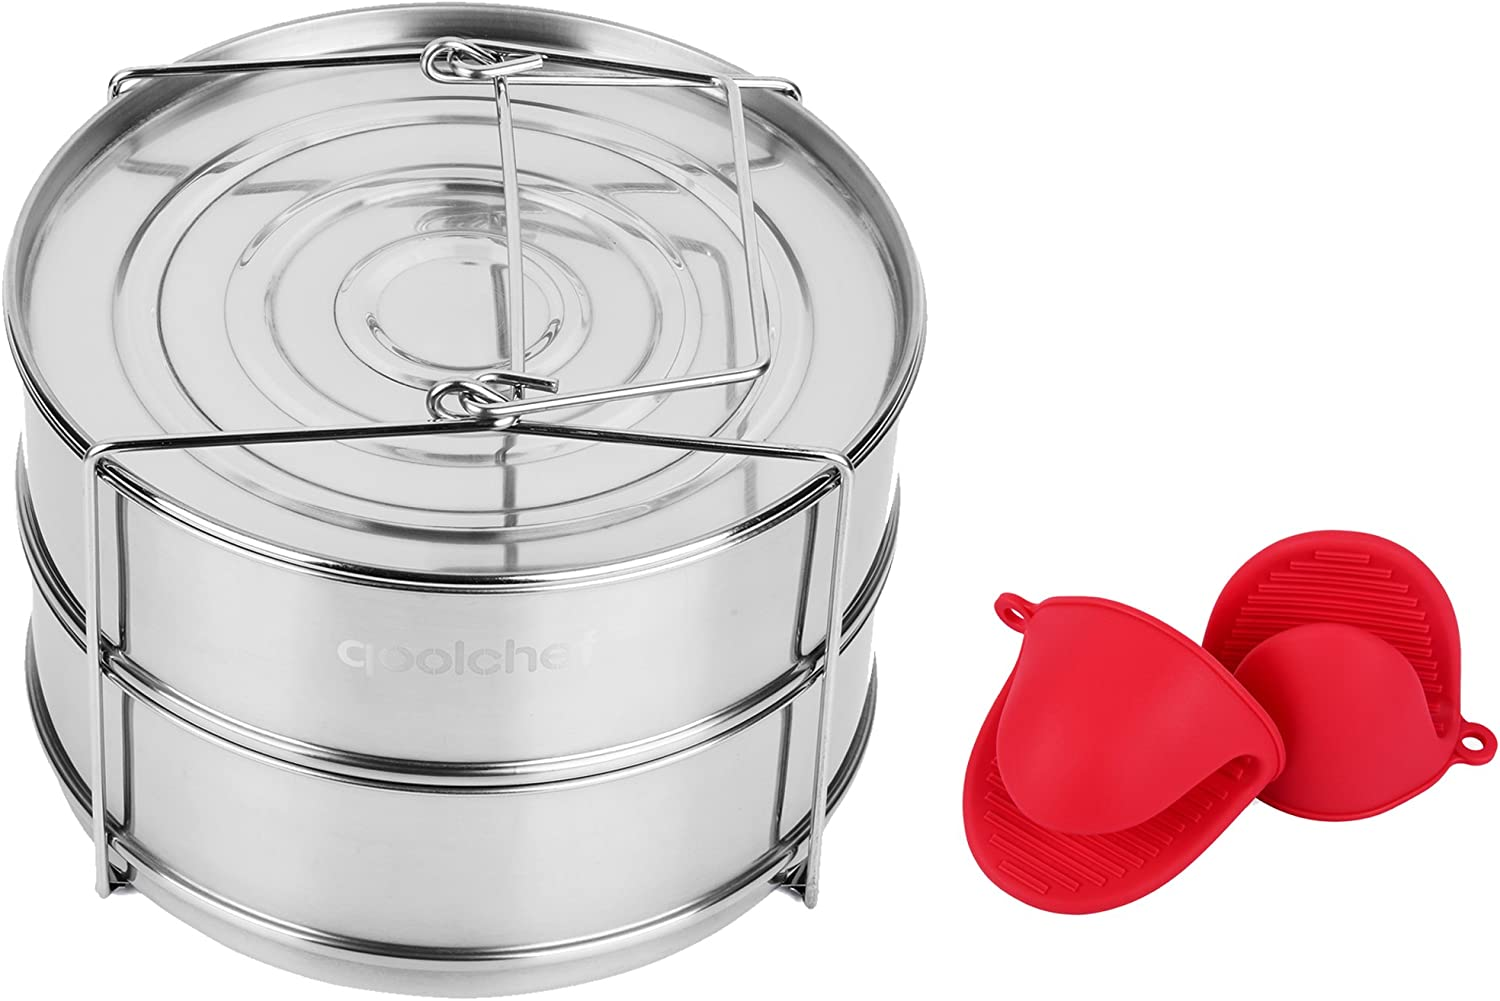 QoolChef Stackable Stainless Steel Pressure Cooker Steamer Insert Pans – Compatible with Pot Accessories 5, 6, 8 qt – Steaming, Baking, Reheating, Lasagna Pans – Bonus Pair of Silicone Oven Mini Mitts